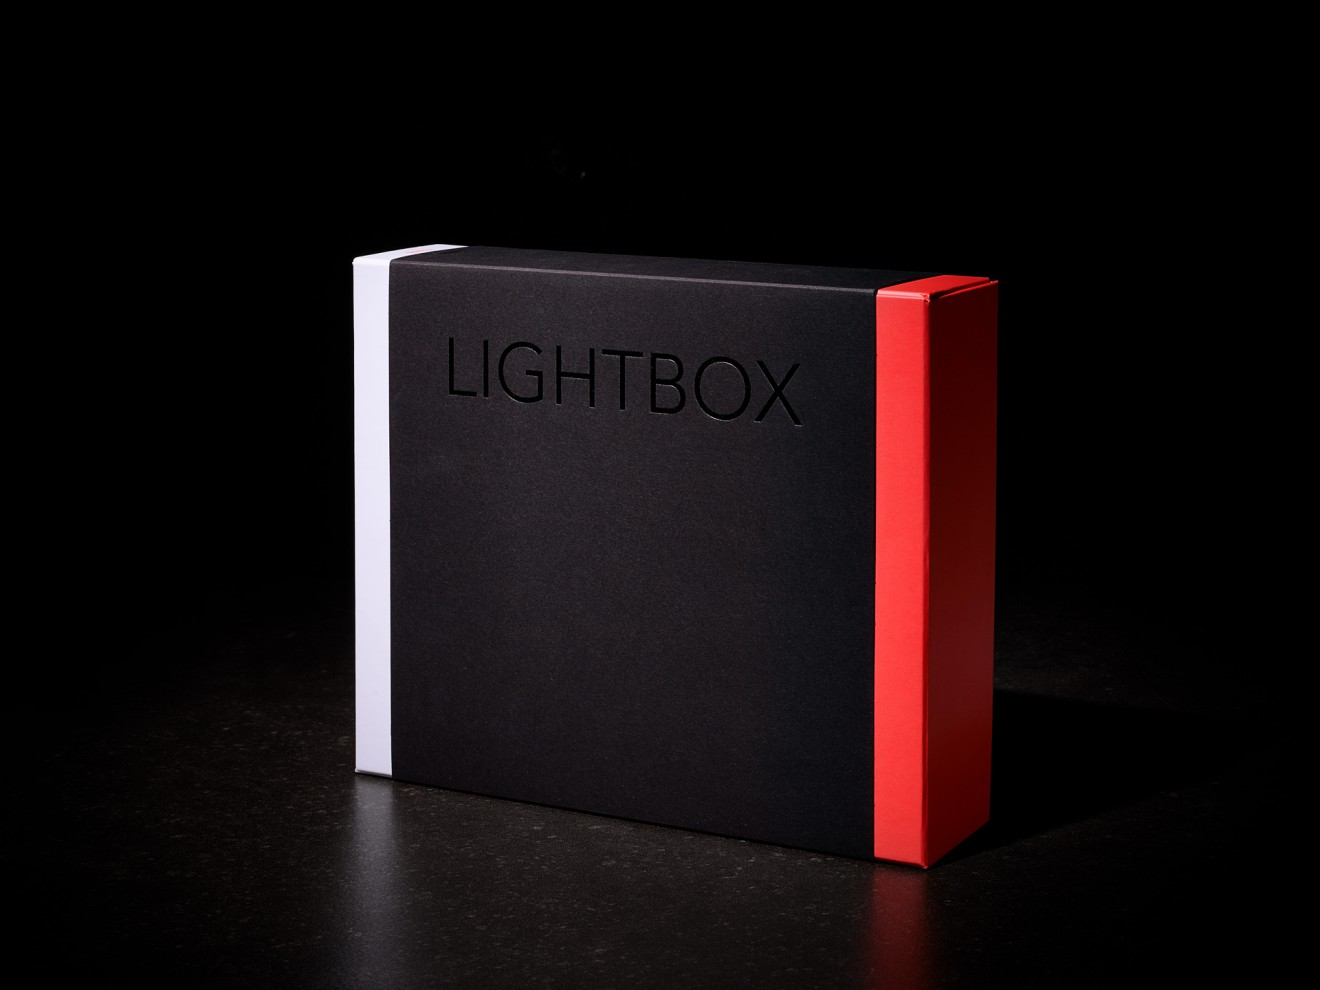 Quatre Mains package design - lightbox, quatre mains, igepa